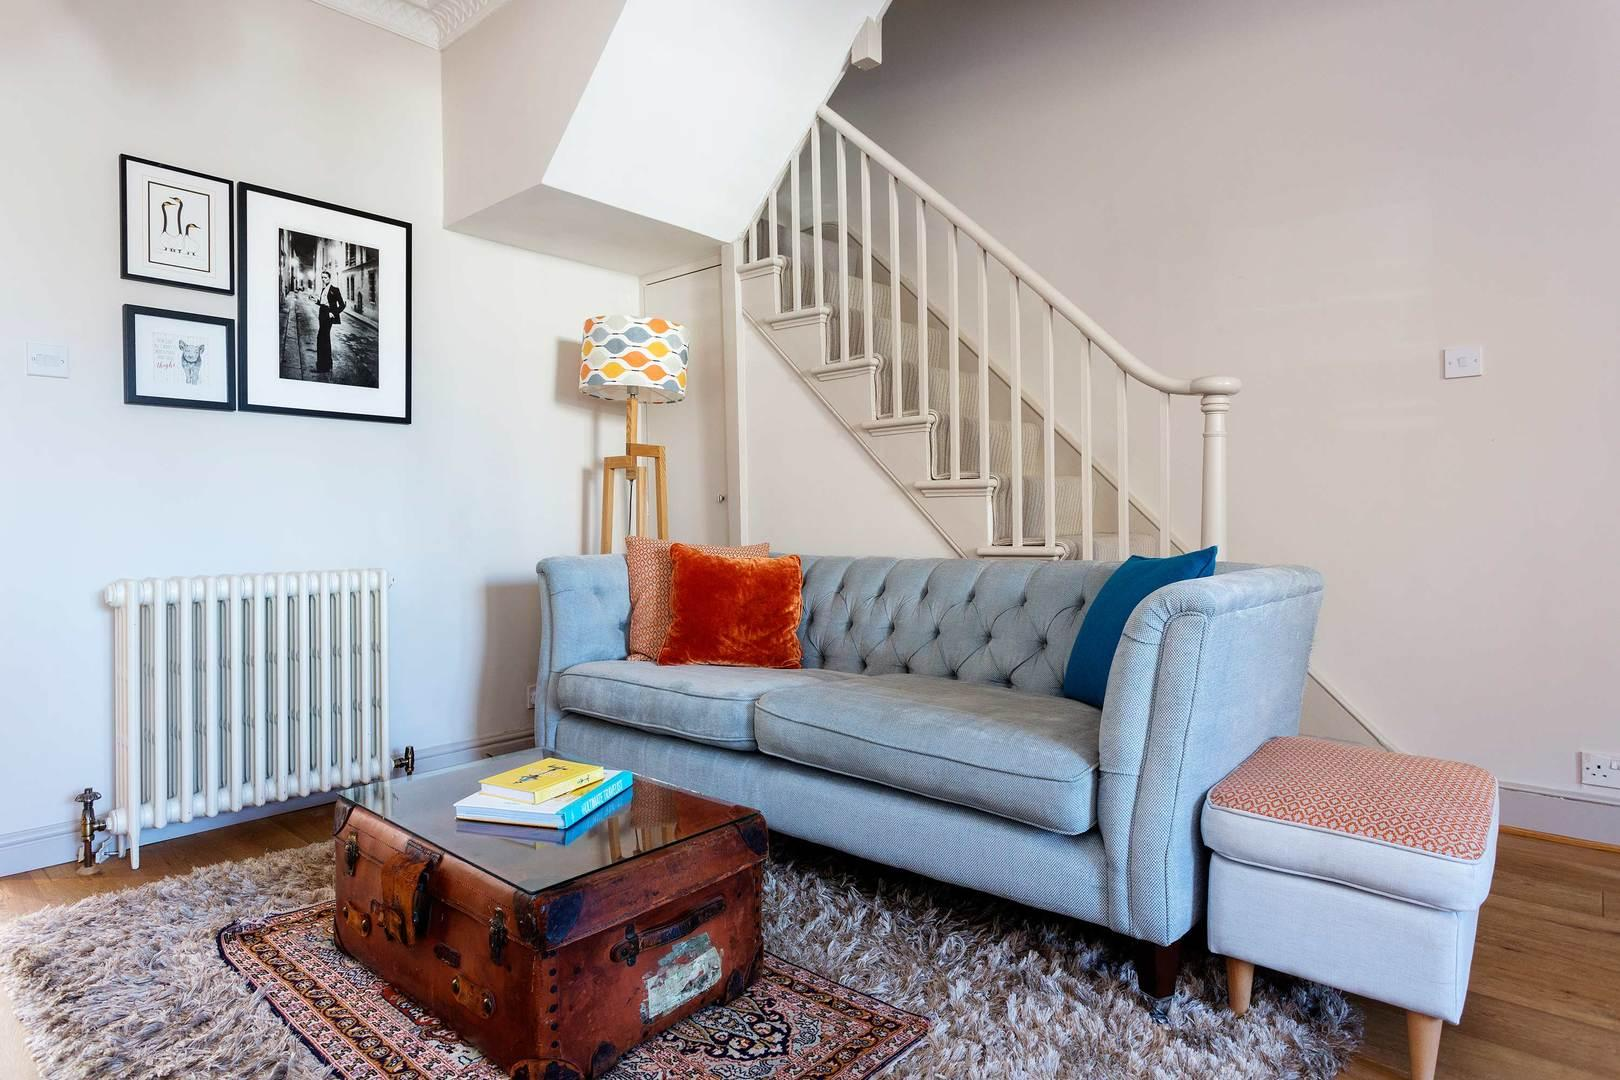 Property Image 2 - Attractive Vintage-Style Wandsworth Home with Garden